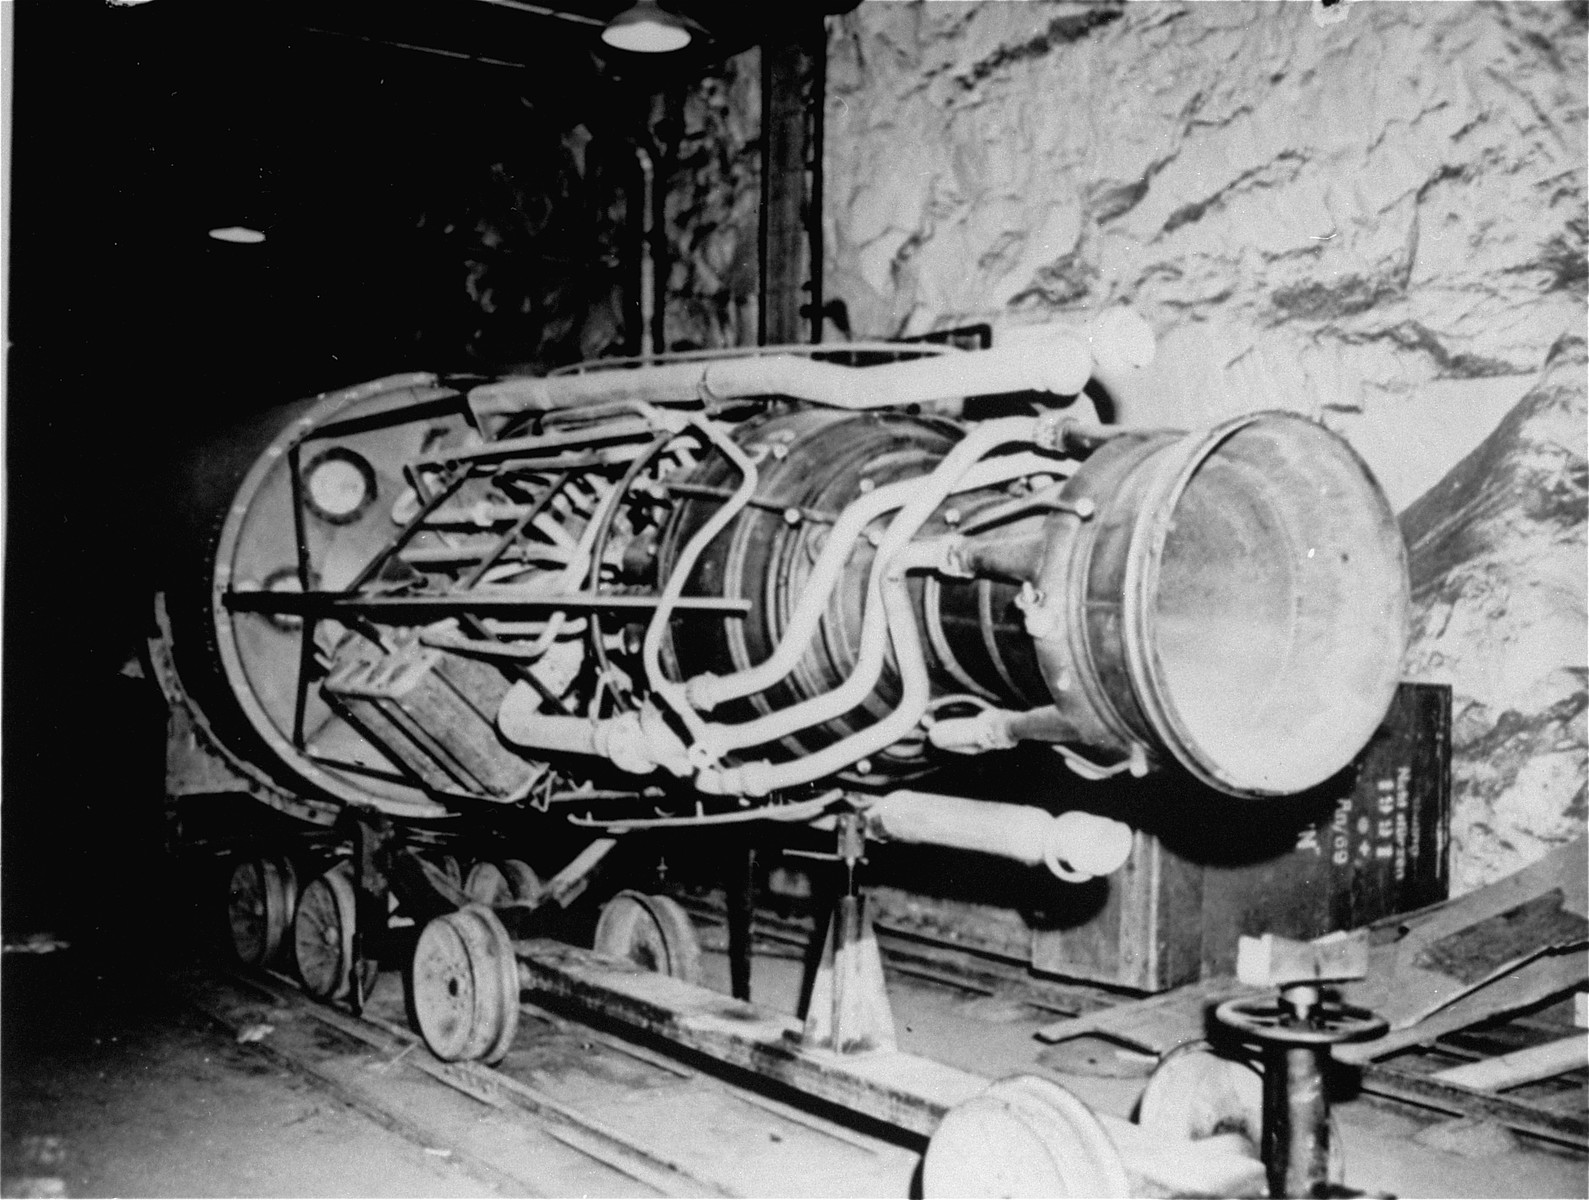 The propulsion unit of a V-2 rocket in the underground factory at Dora-Mittelbau.